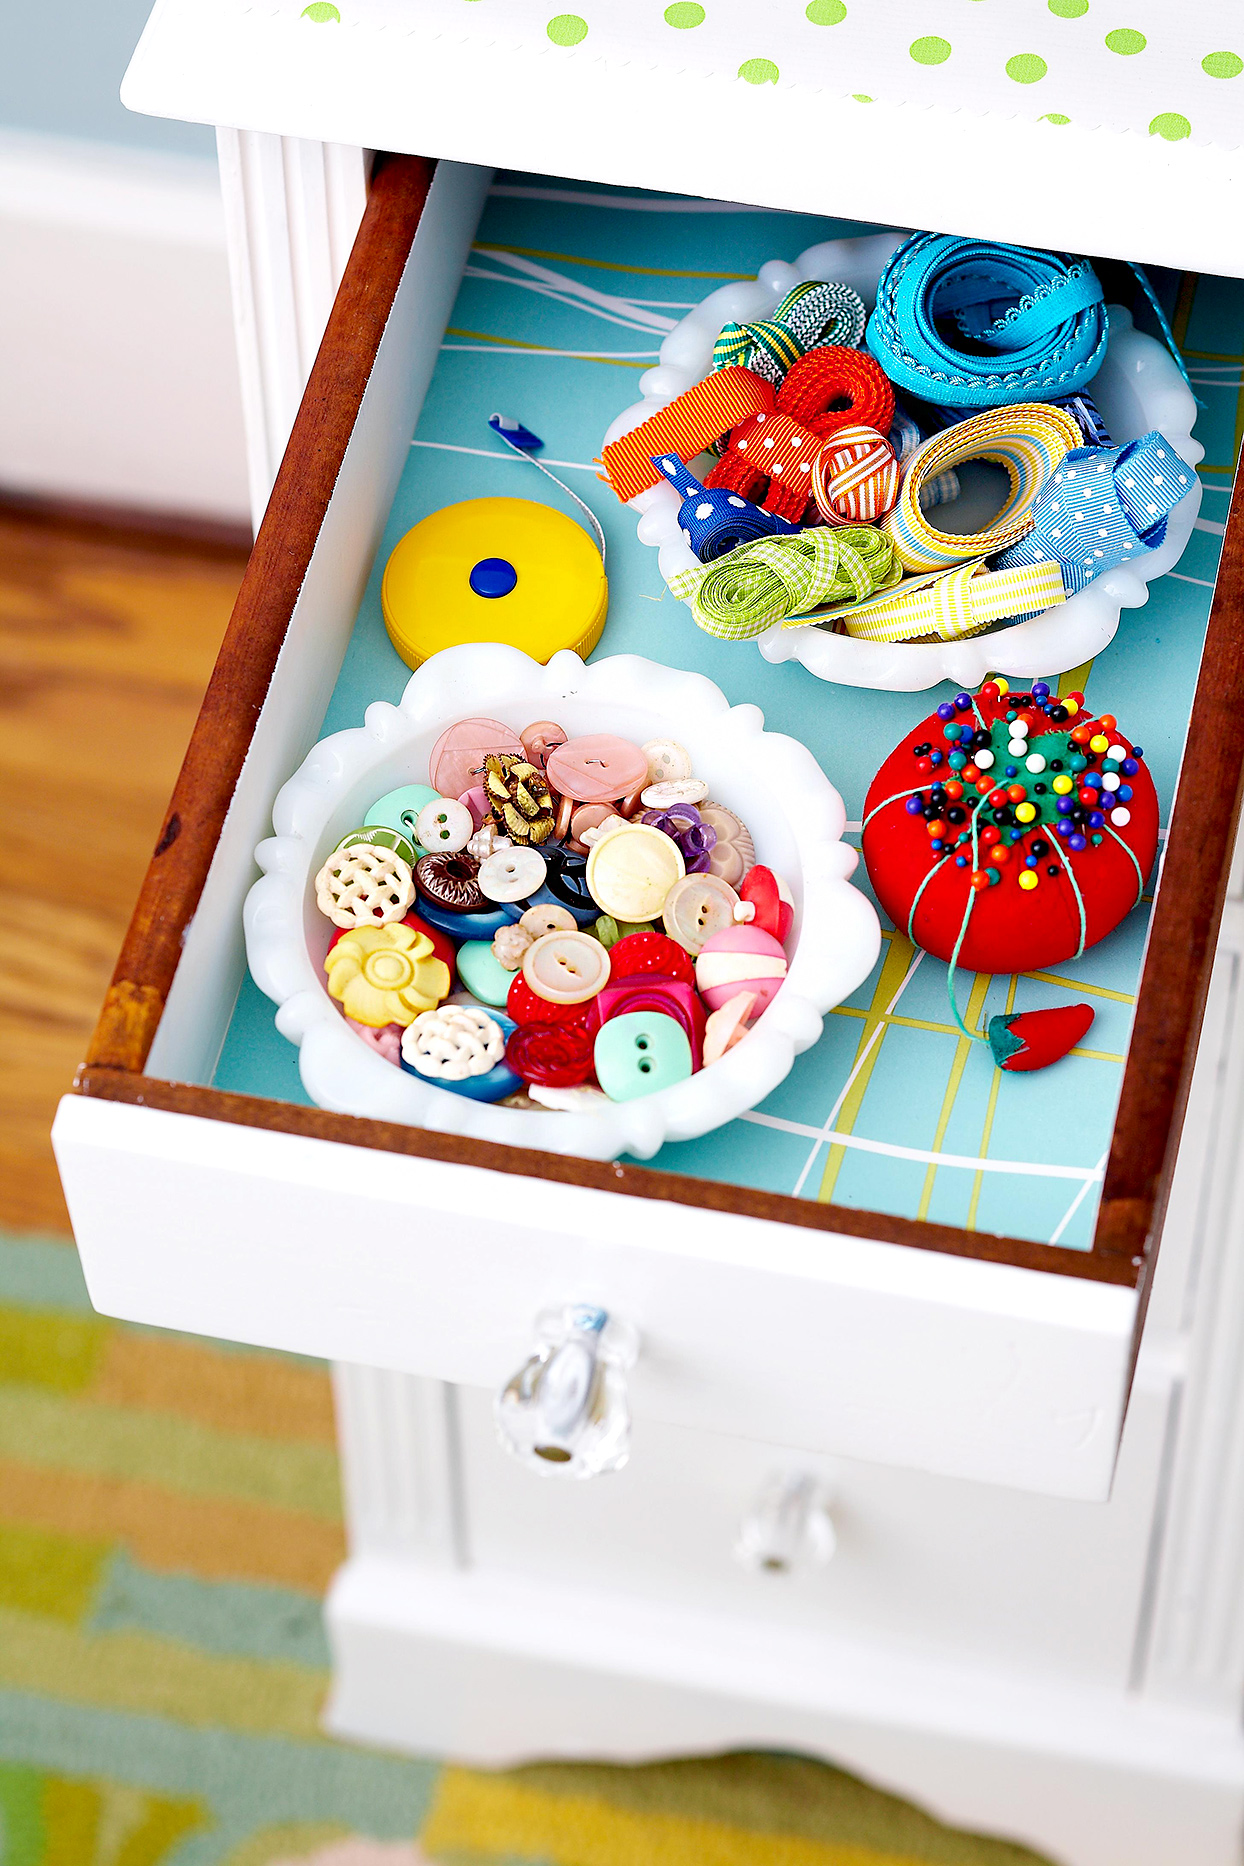 Drawer with sewing supplies in bowls